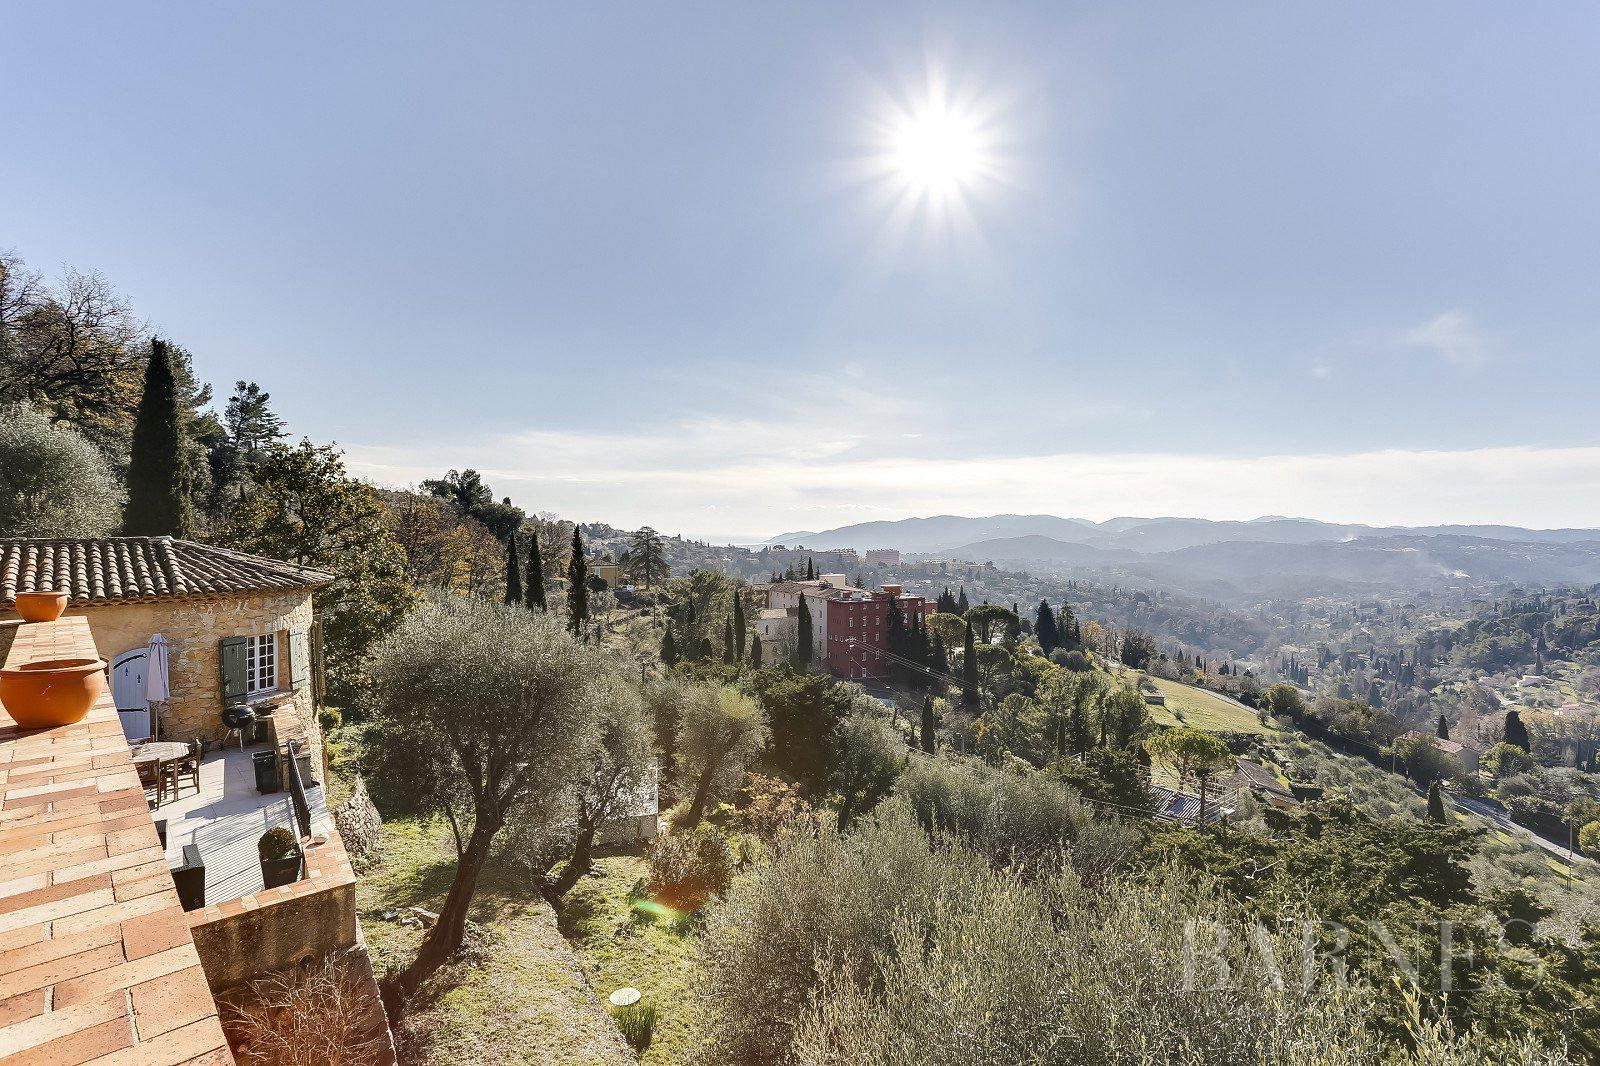 GRASSE - PROVENCAL STONE FARMHOUSE DATING FROM THE 18TH CENTURY - PANORAMIC VIEW